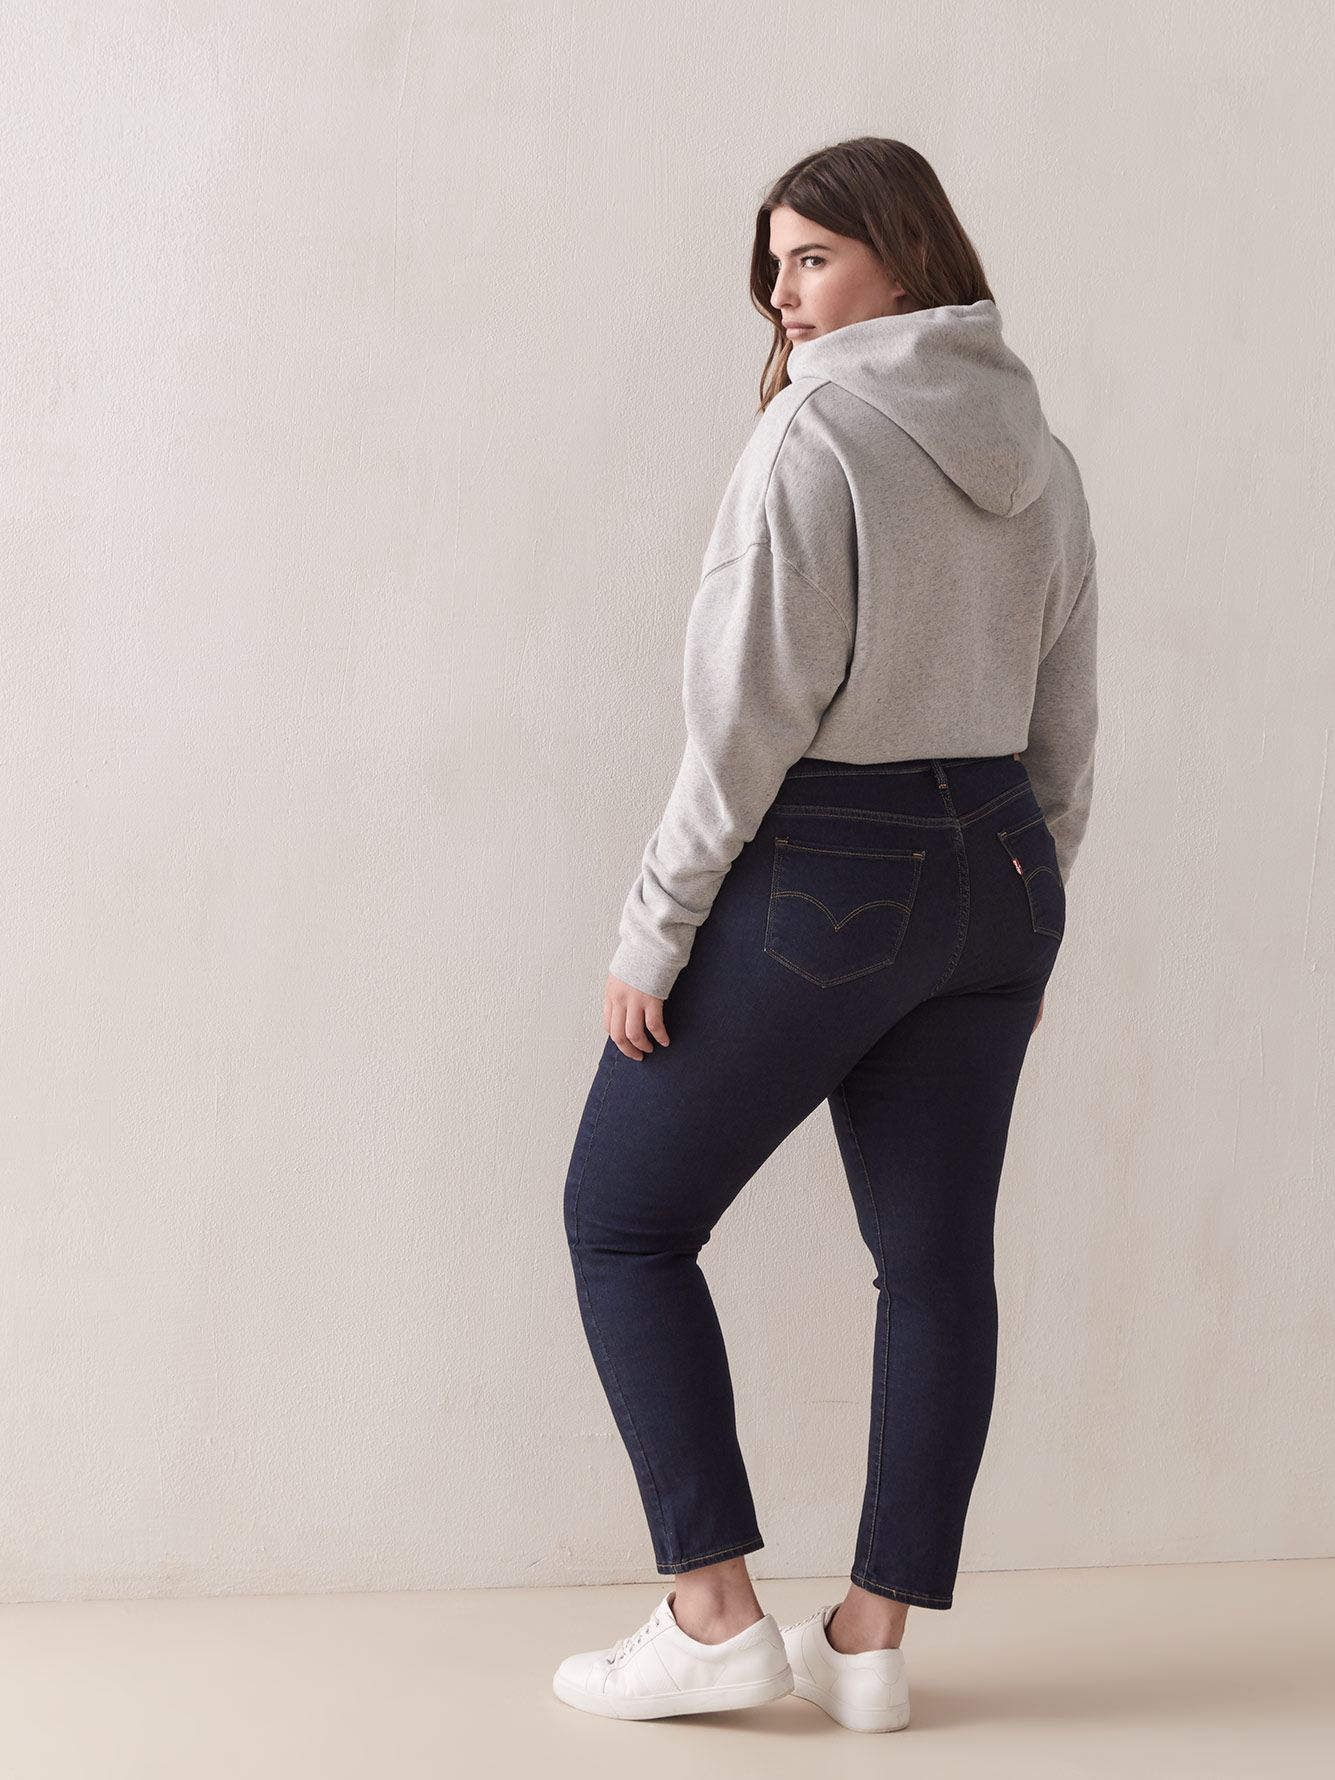 Stretchy 311 Shaping Skinny Jean - Levi's Premium